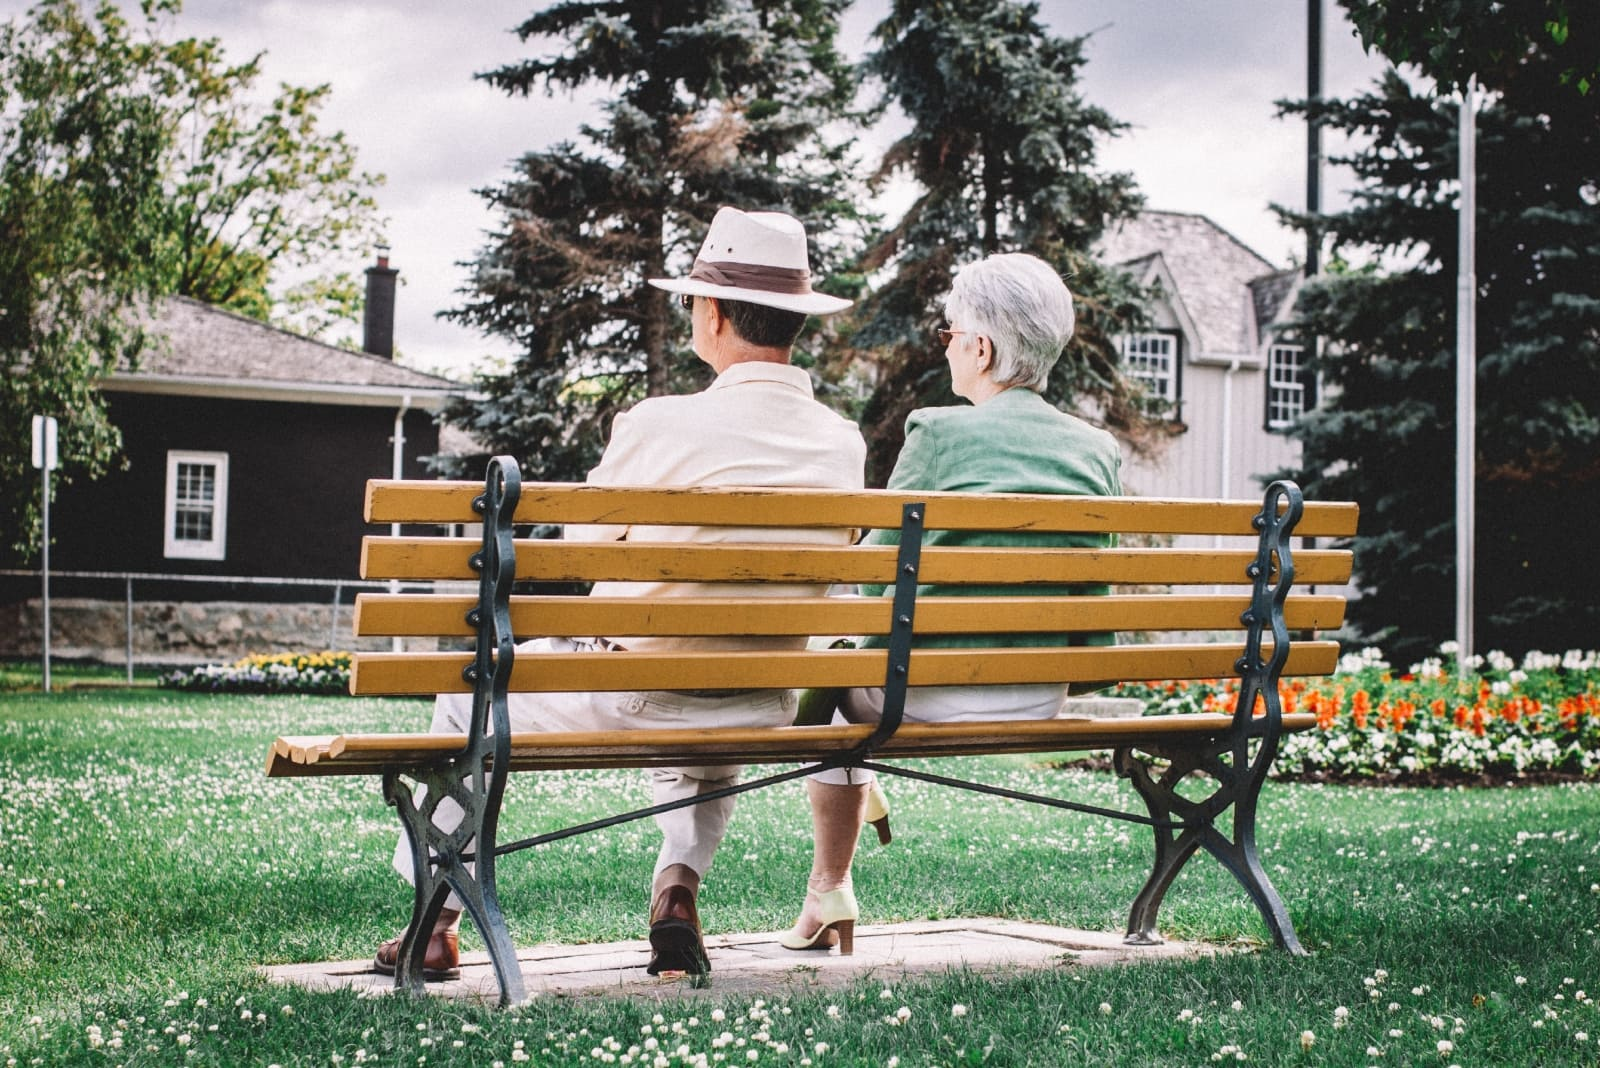 man with hat and woman sitting on bench